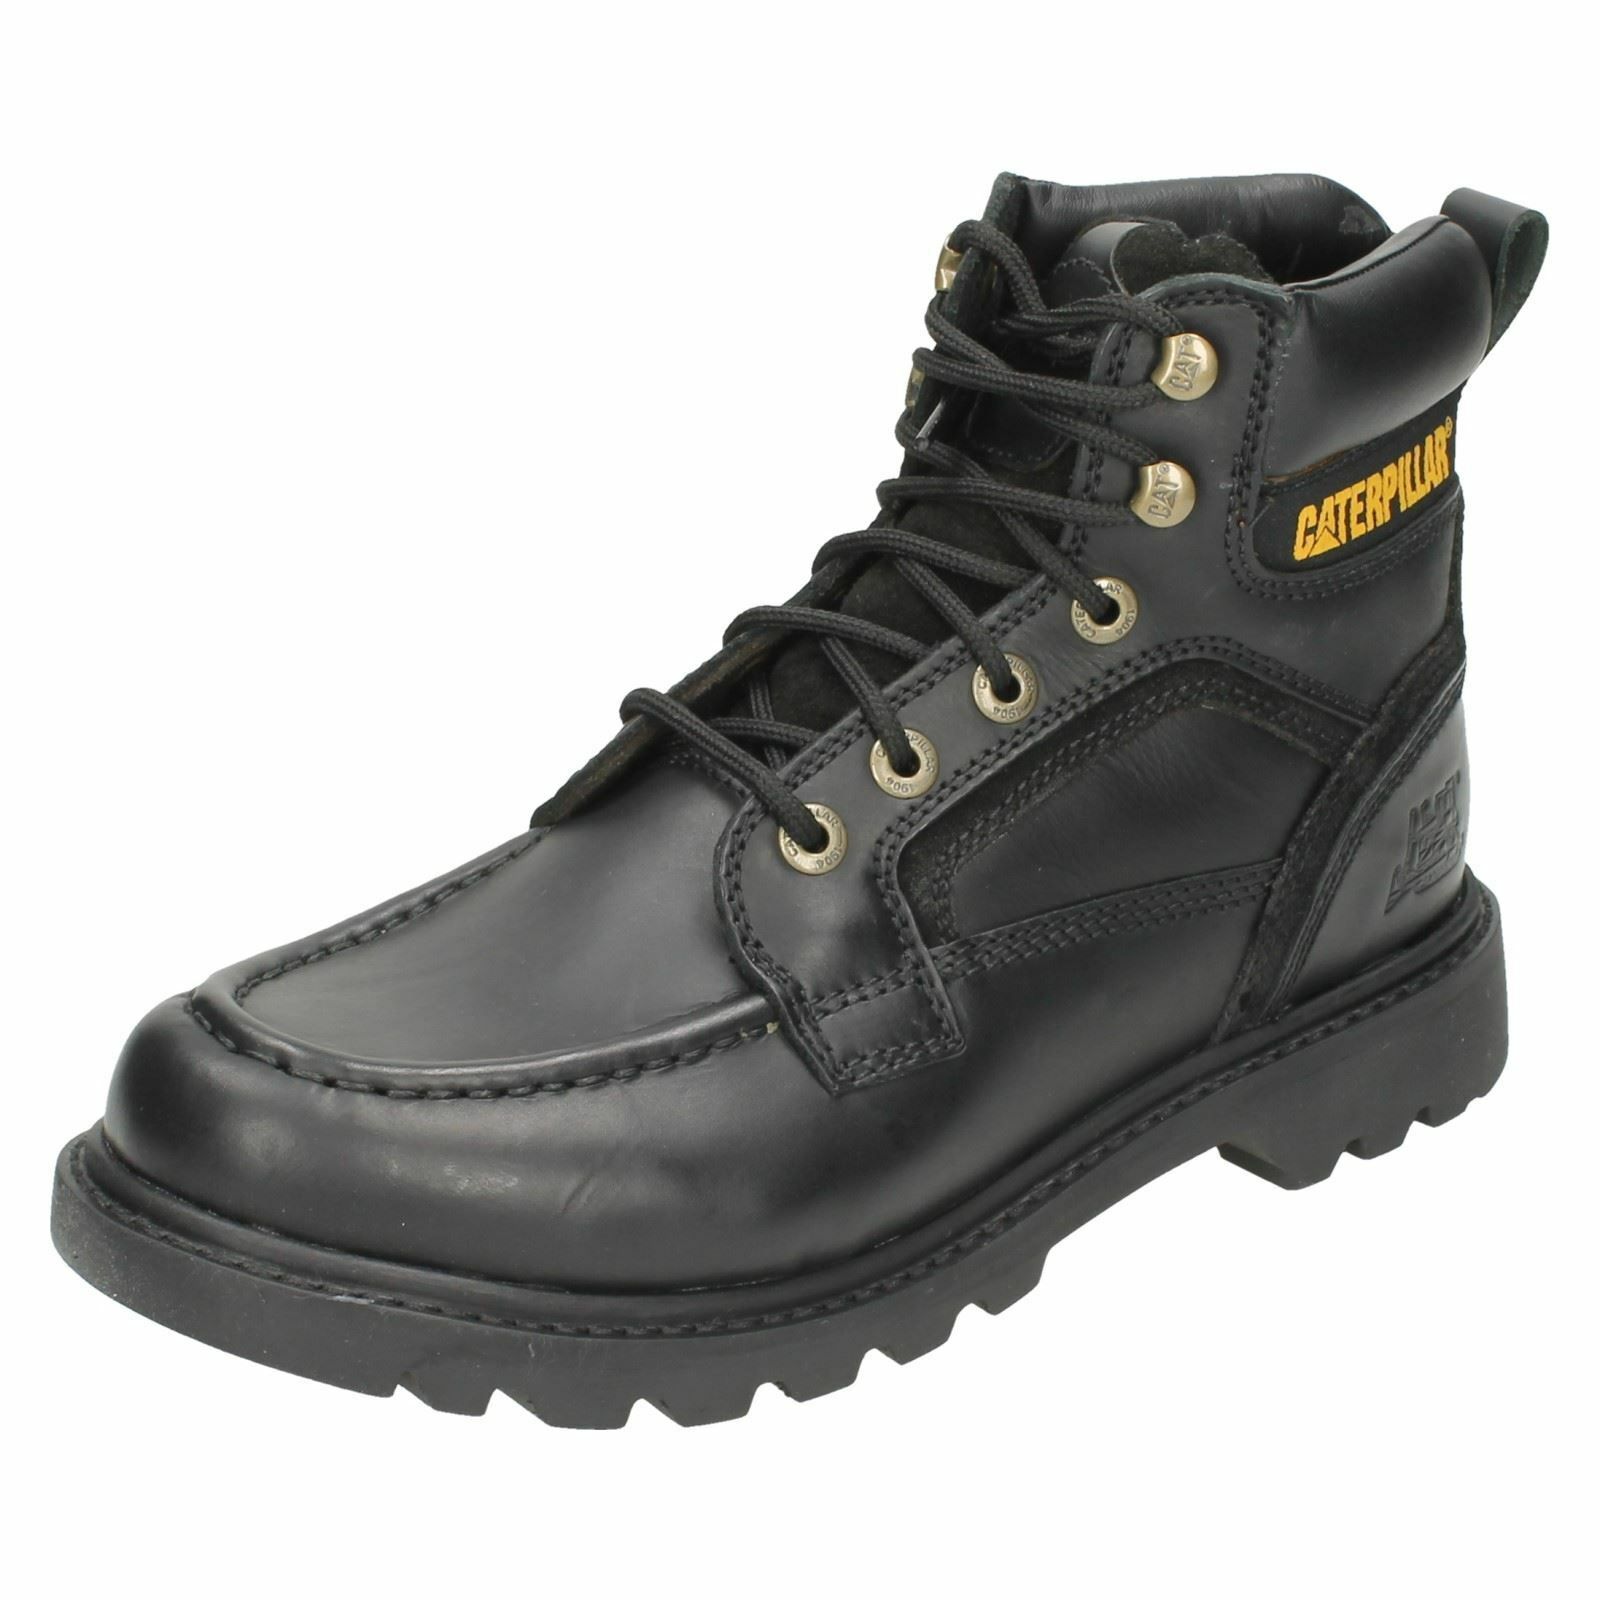 Men's TRANSPOSE boots Black leather lace up boots  by CATERPILLAR